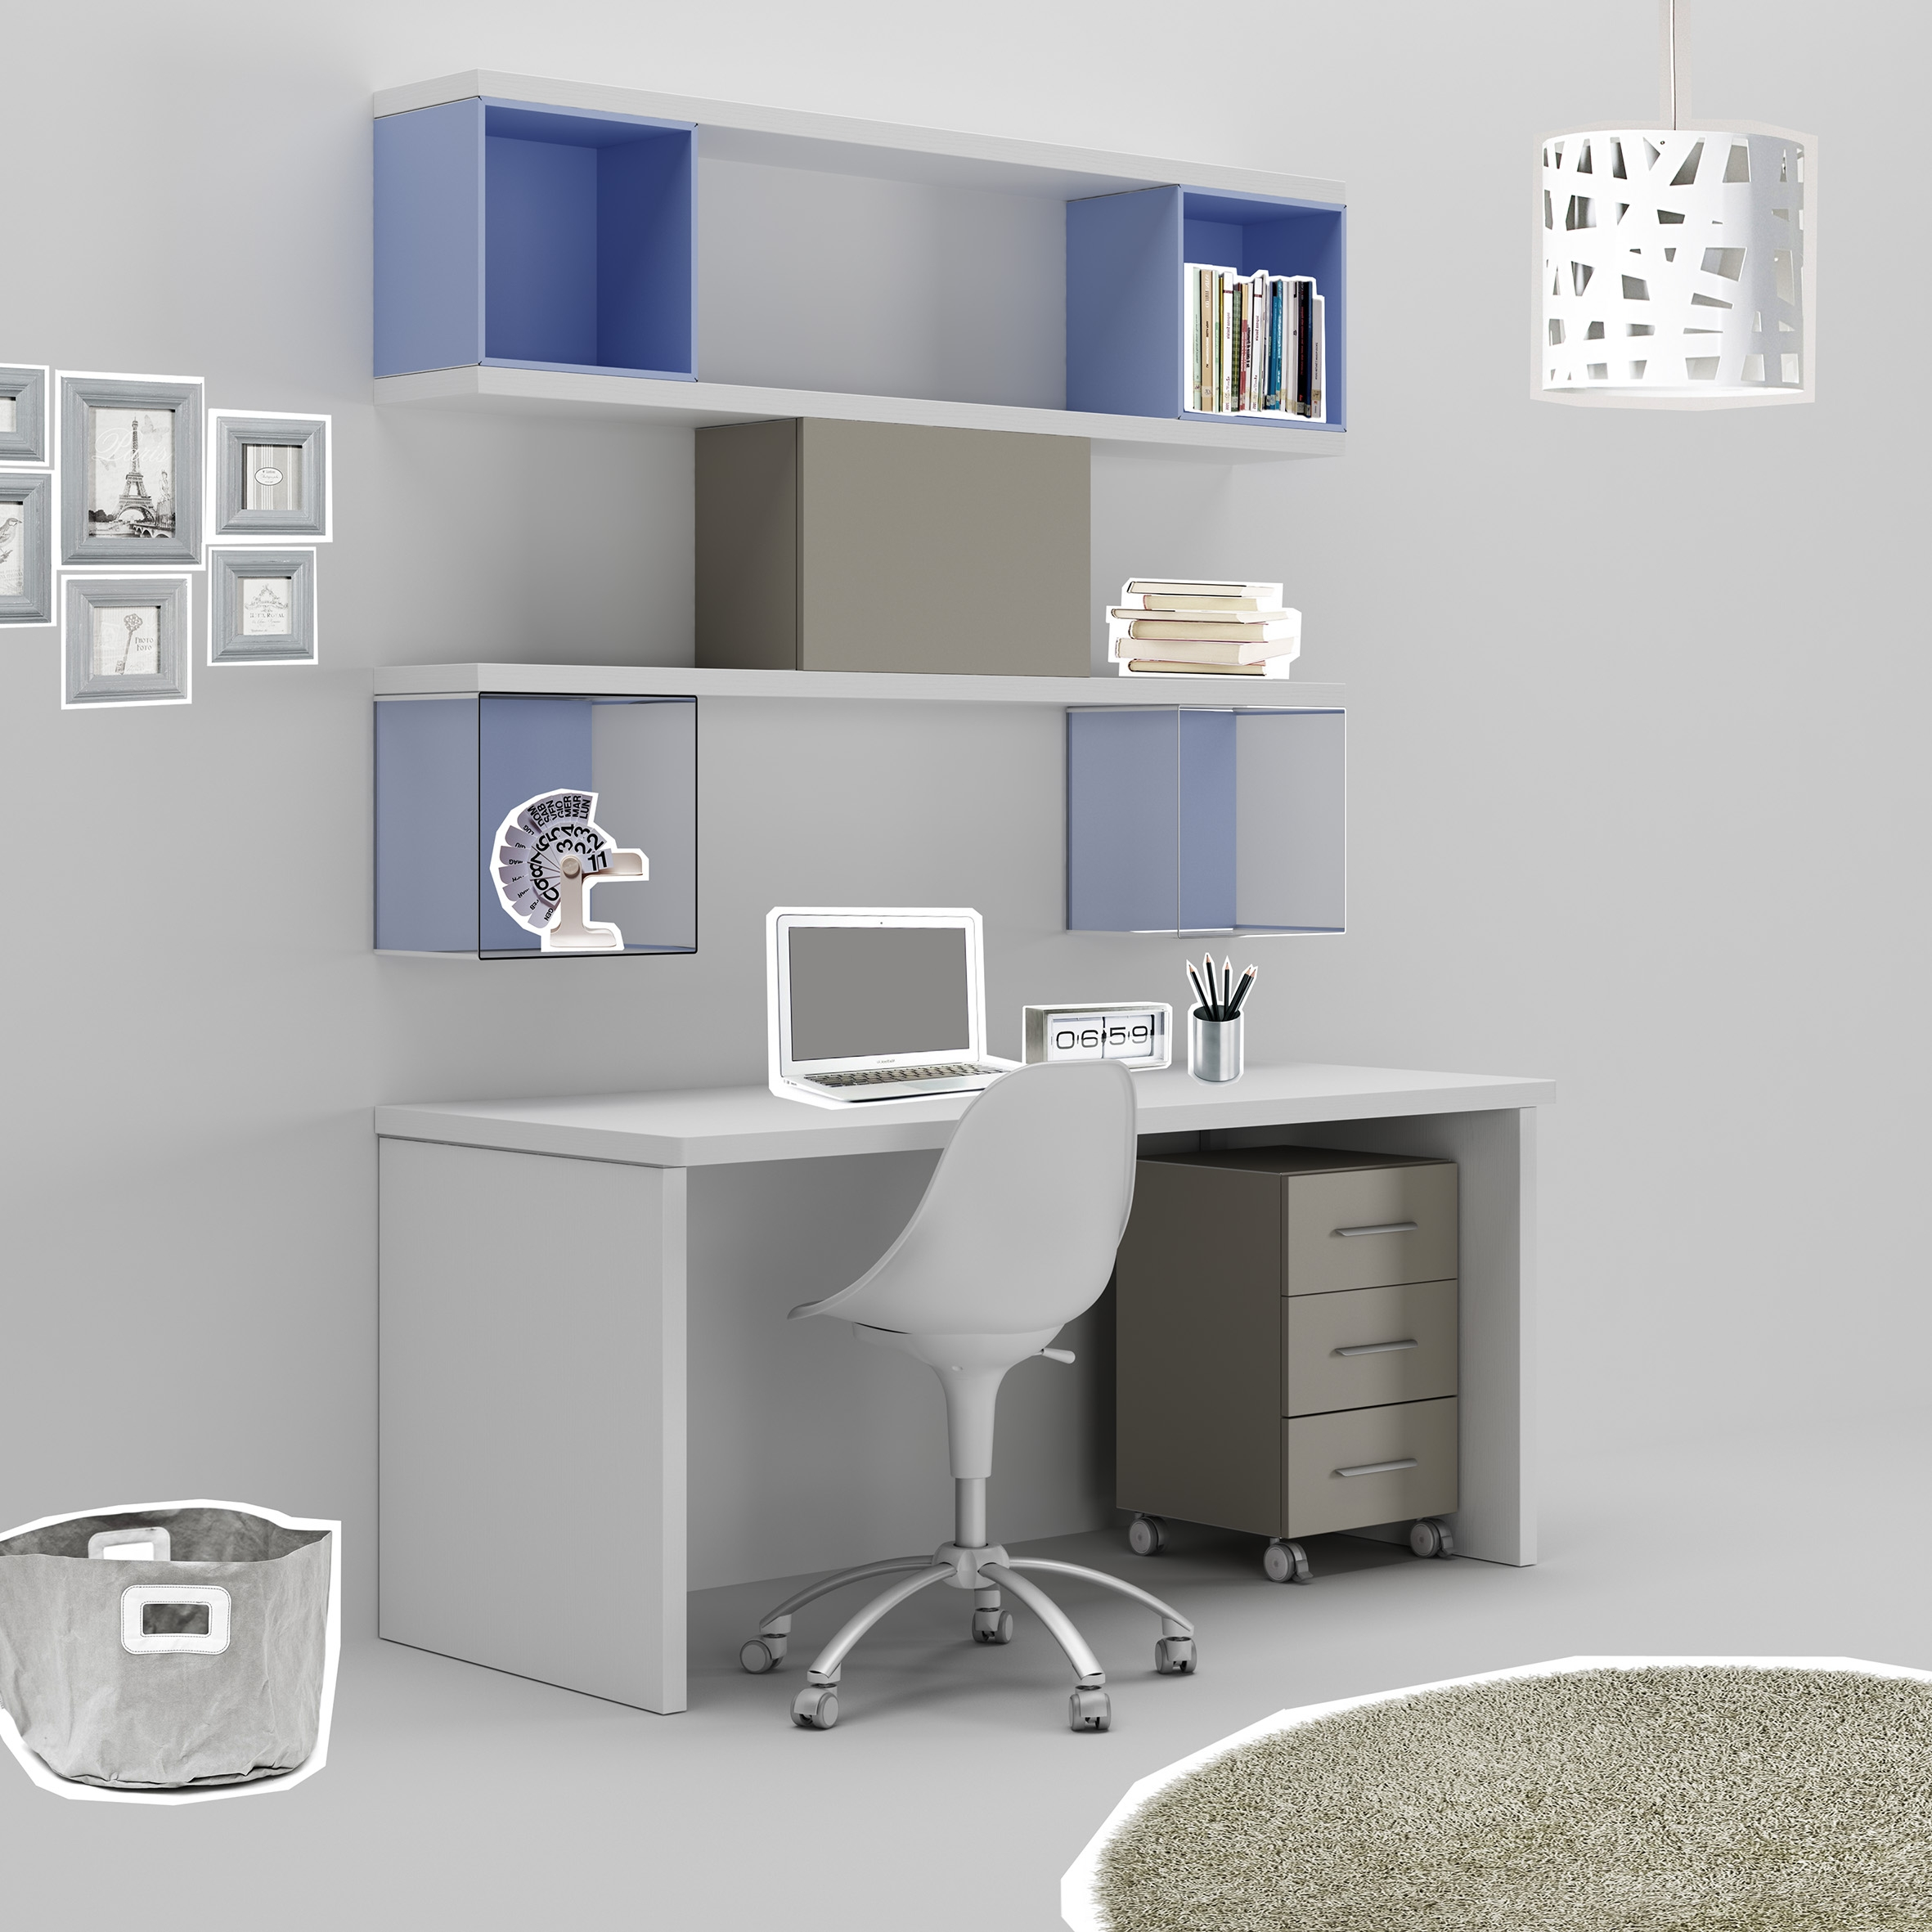 Bureau ado avec niches d co en m thacrylate moretti - Tuto deco chambre ado ...